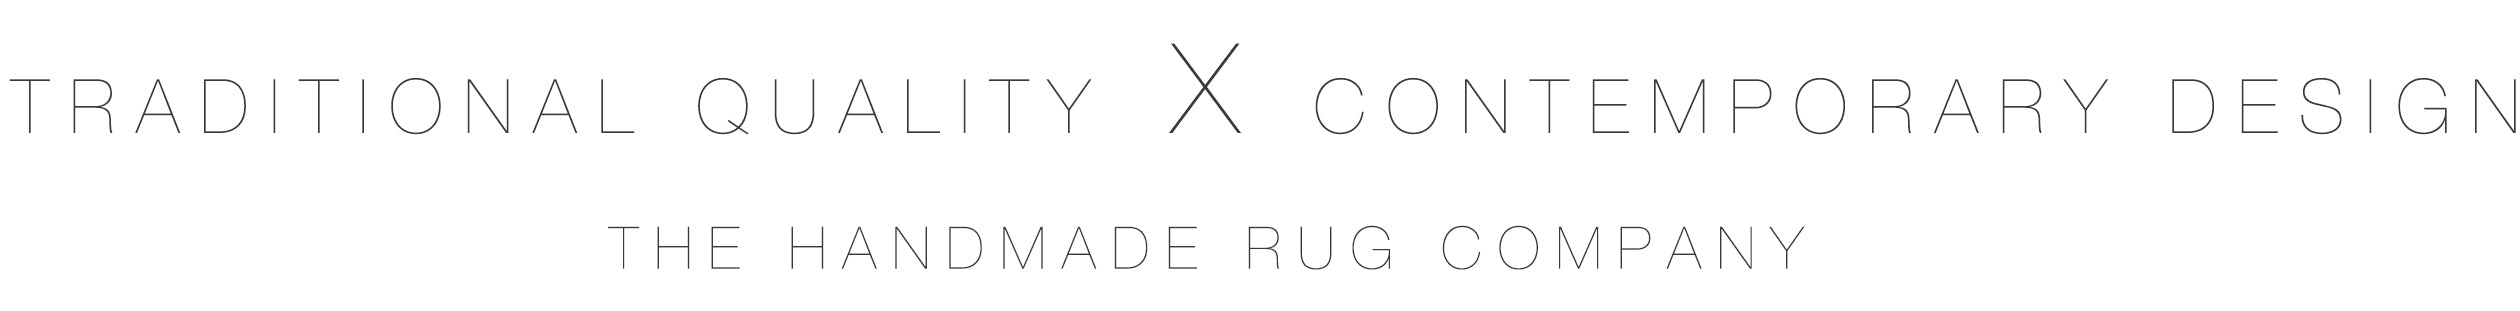 contemporary rugs by THE HANDMADE RUG COMPANY